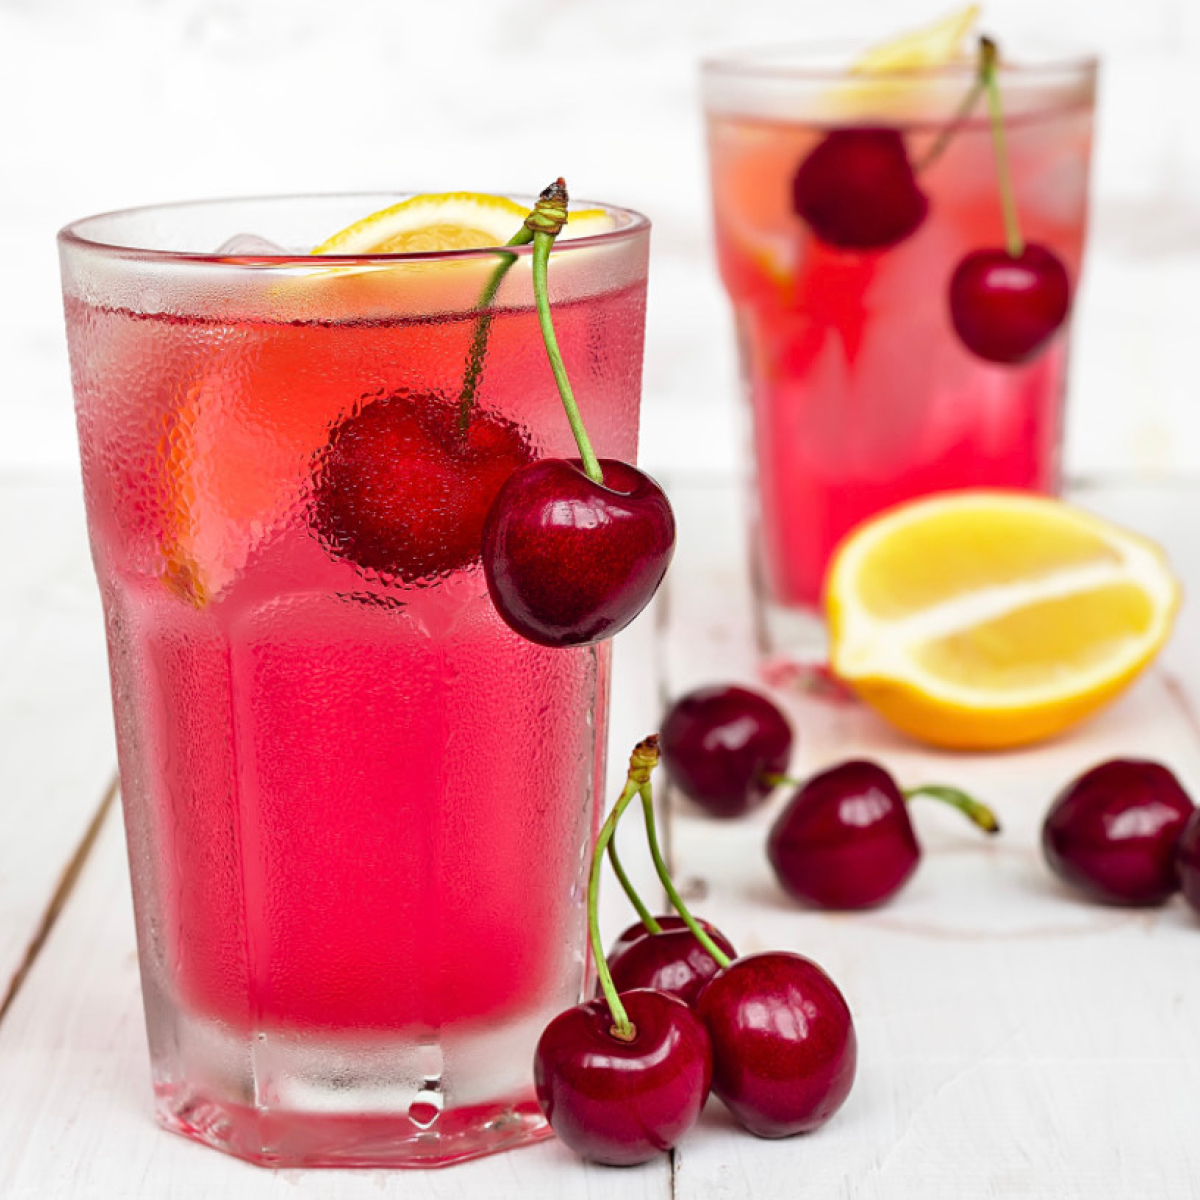 Cherry and Salted Caramel Spiced Rum